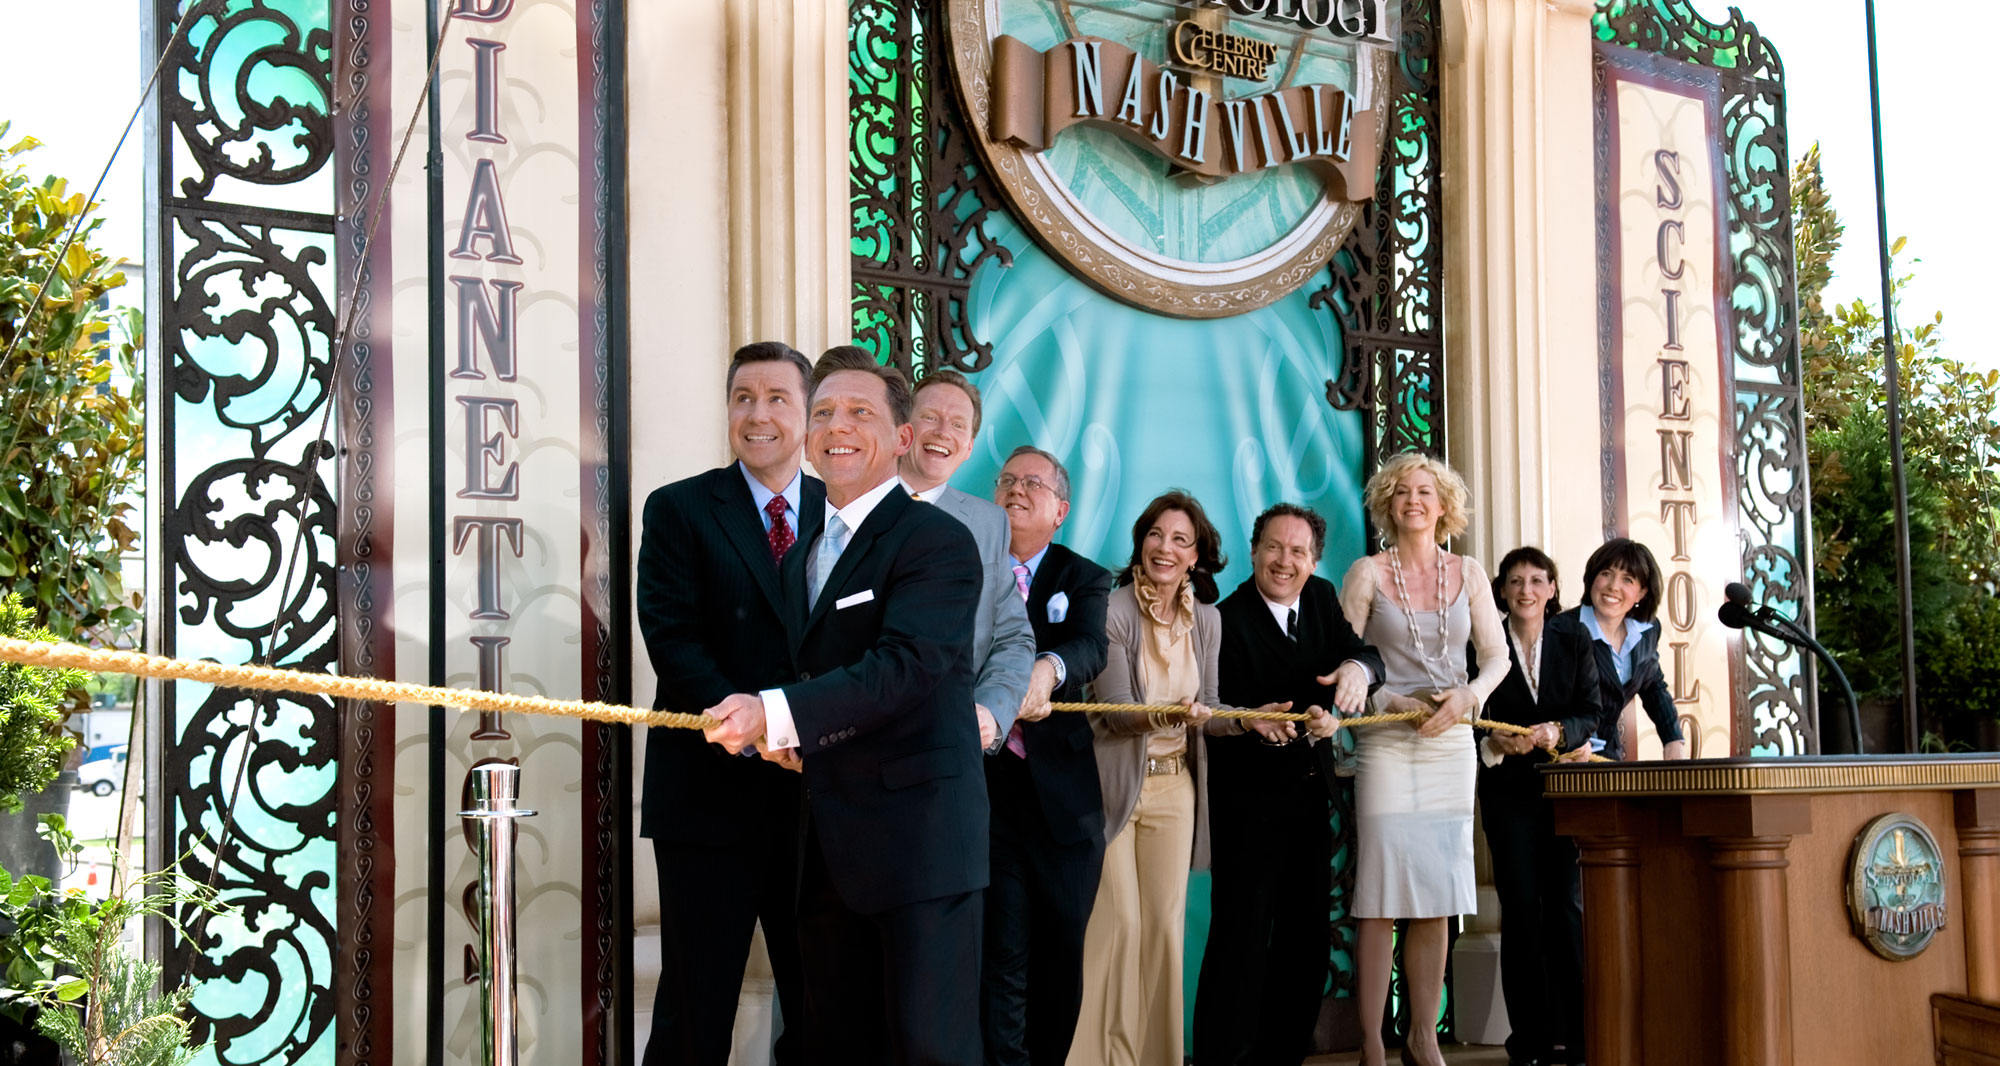 Scientology's Top 10 Converted Properties in America